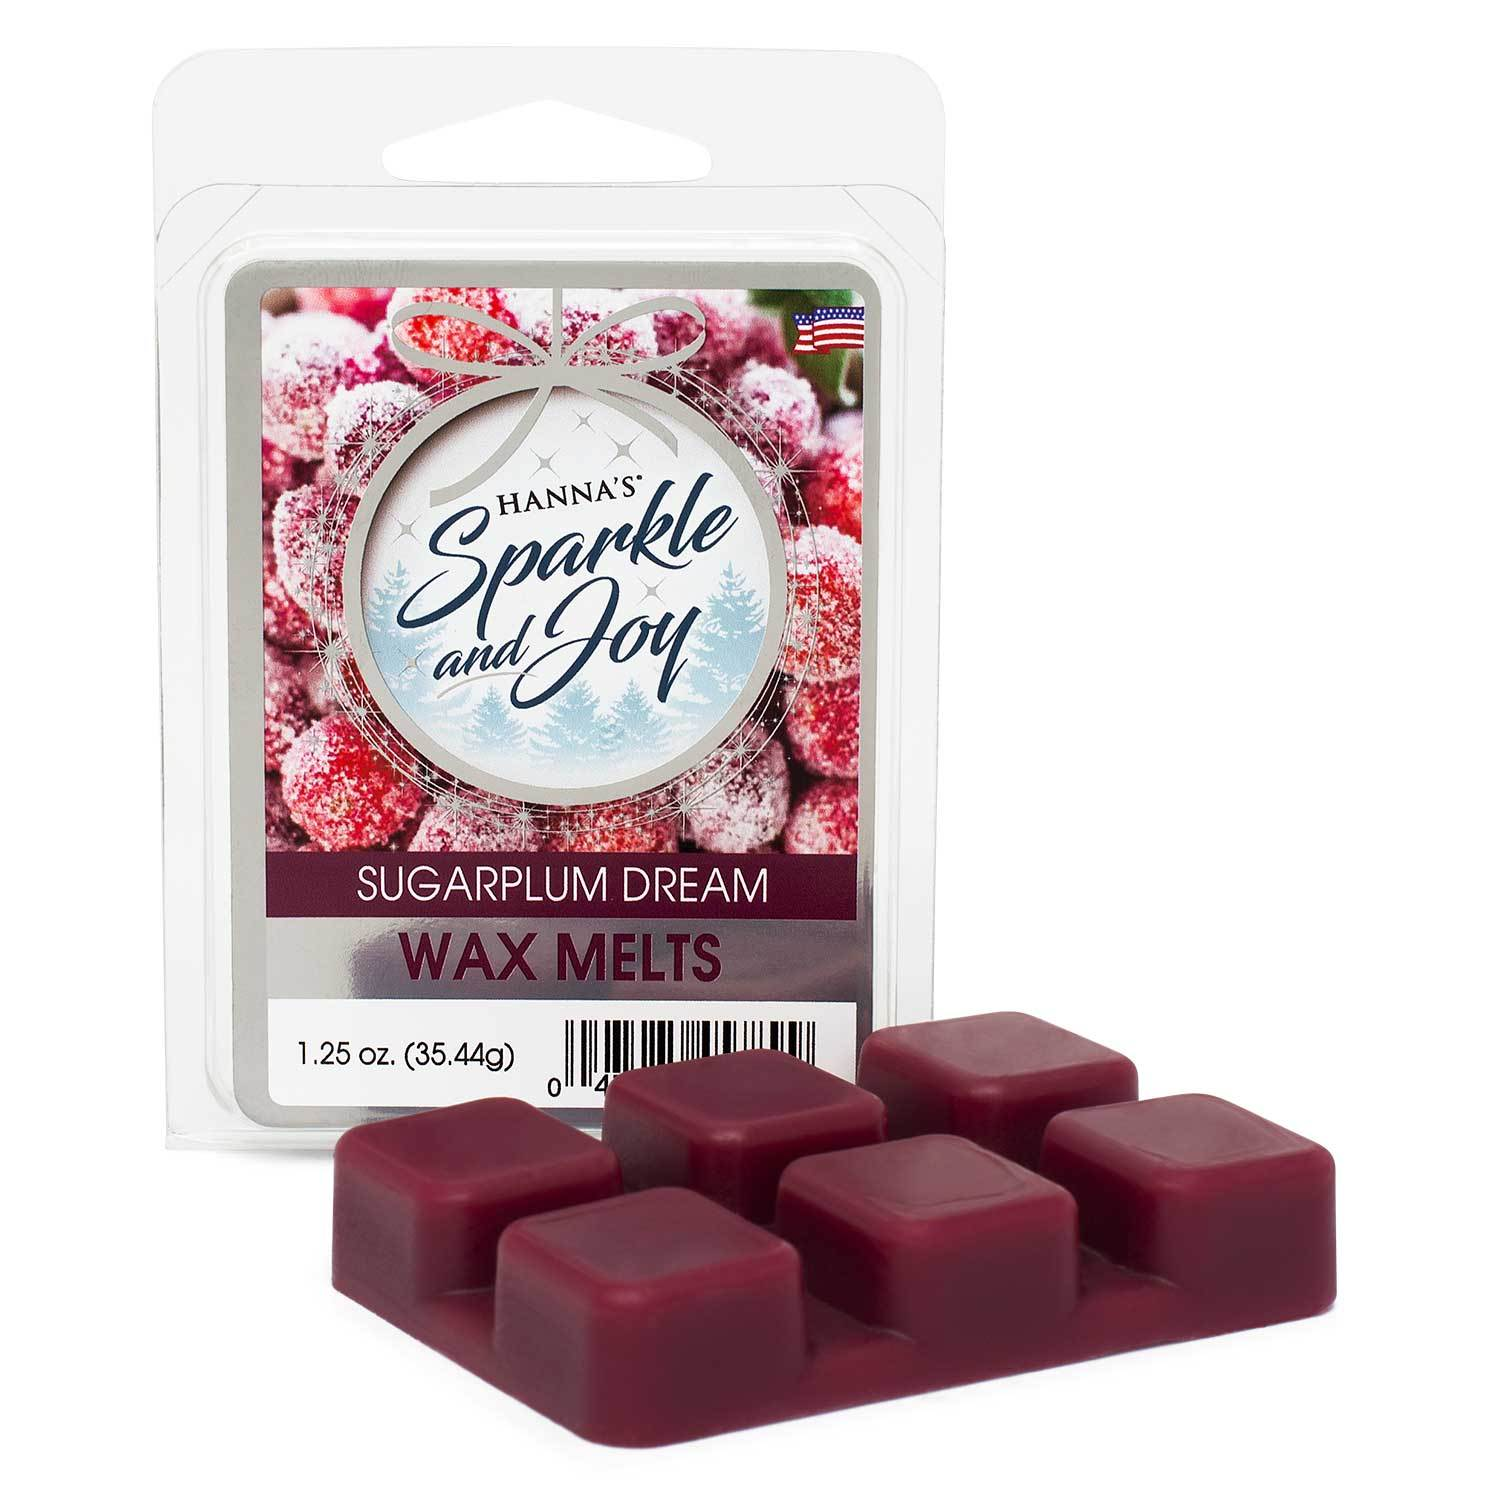 Sugarplum Dream Wax Melts 6 Pack Melts Candlemart.com $ 2.00